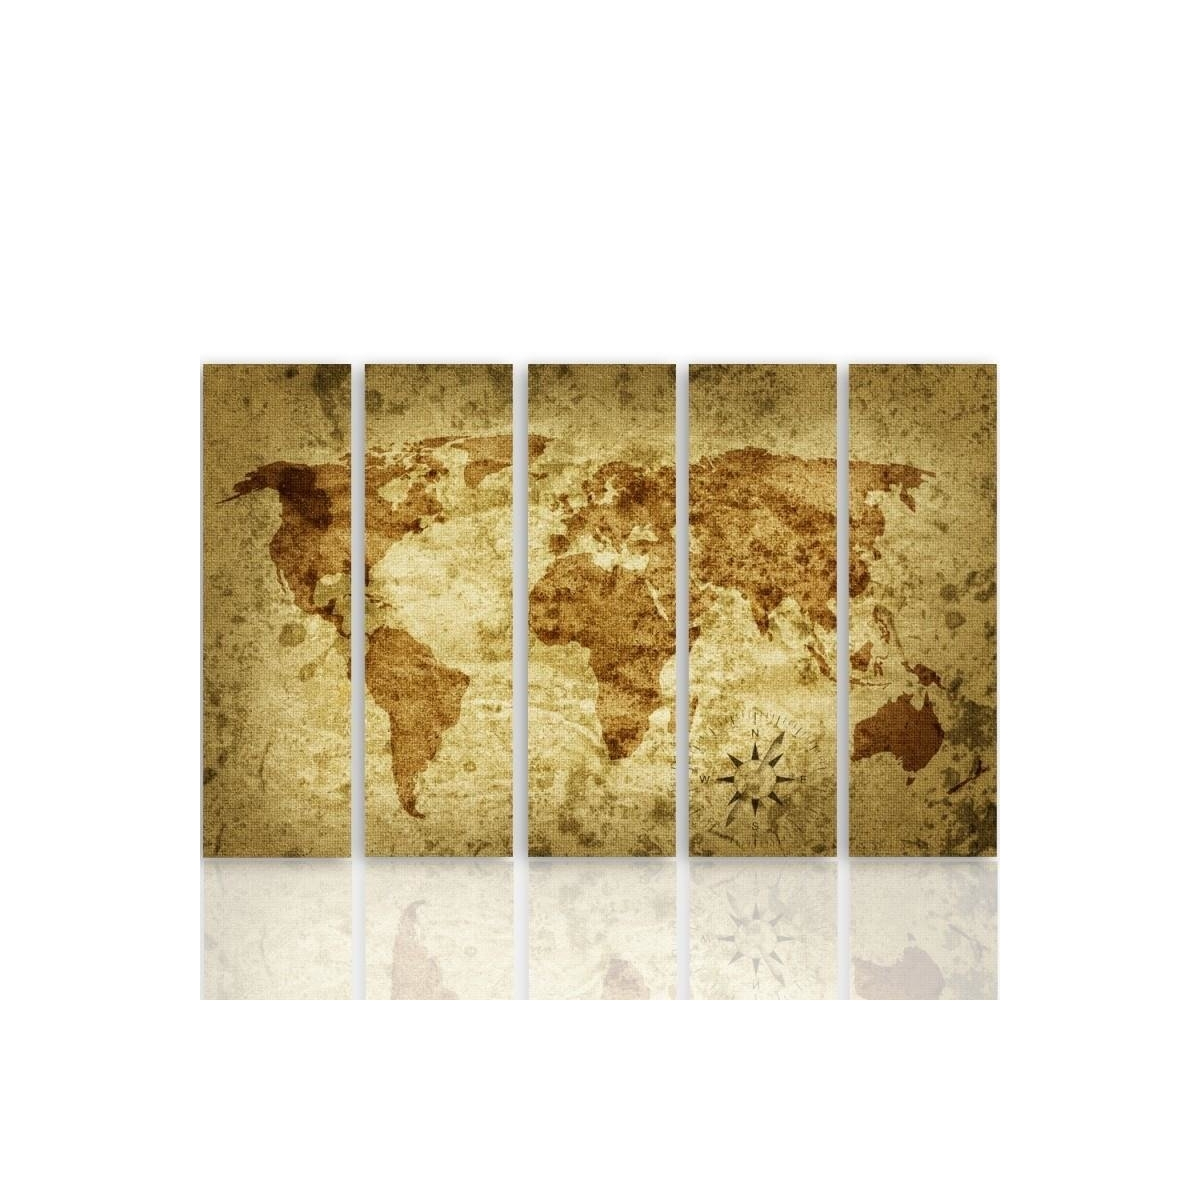 Five Part Picture On Canvas, Pentaptych, Type C, Old World Map 2 100x150